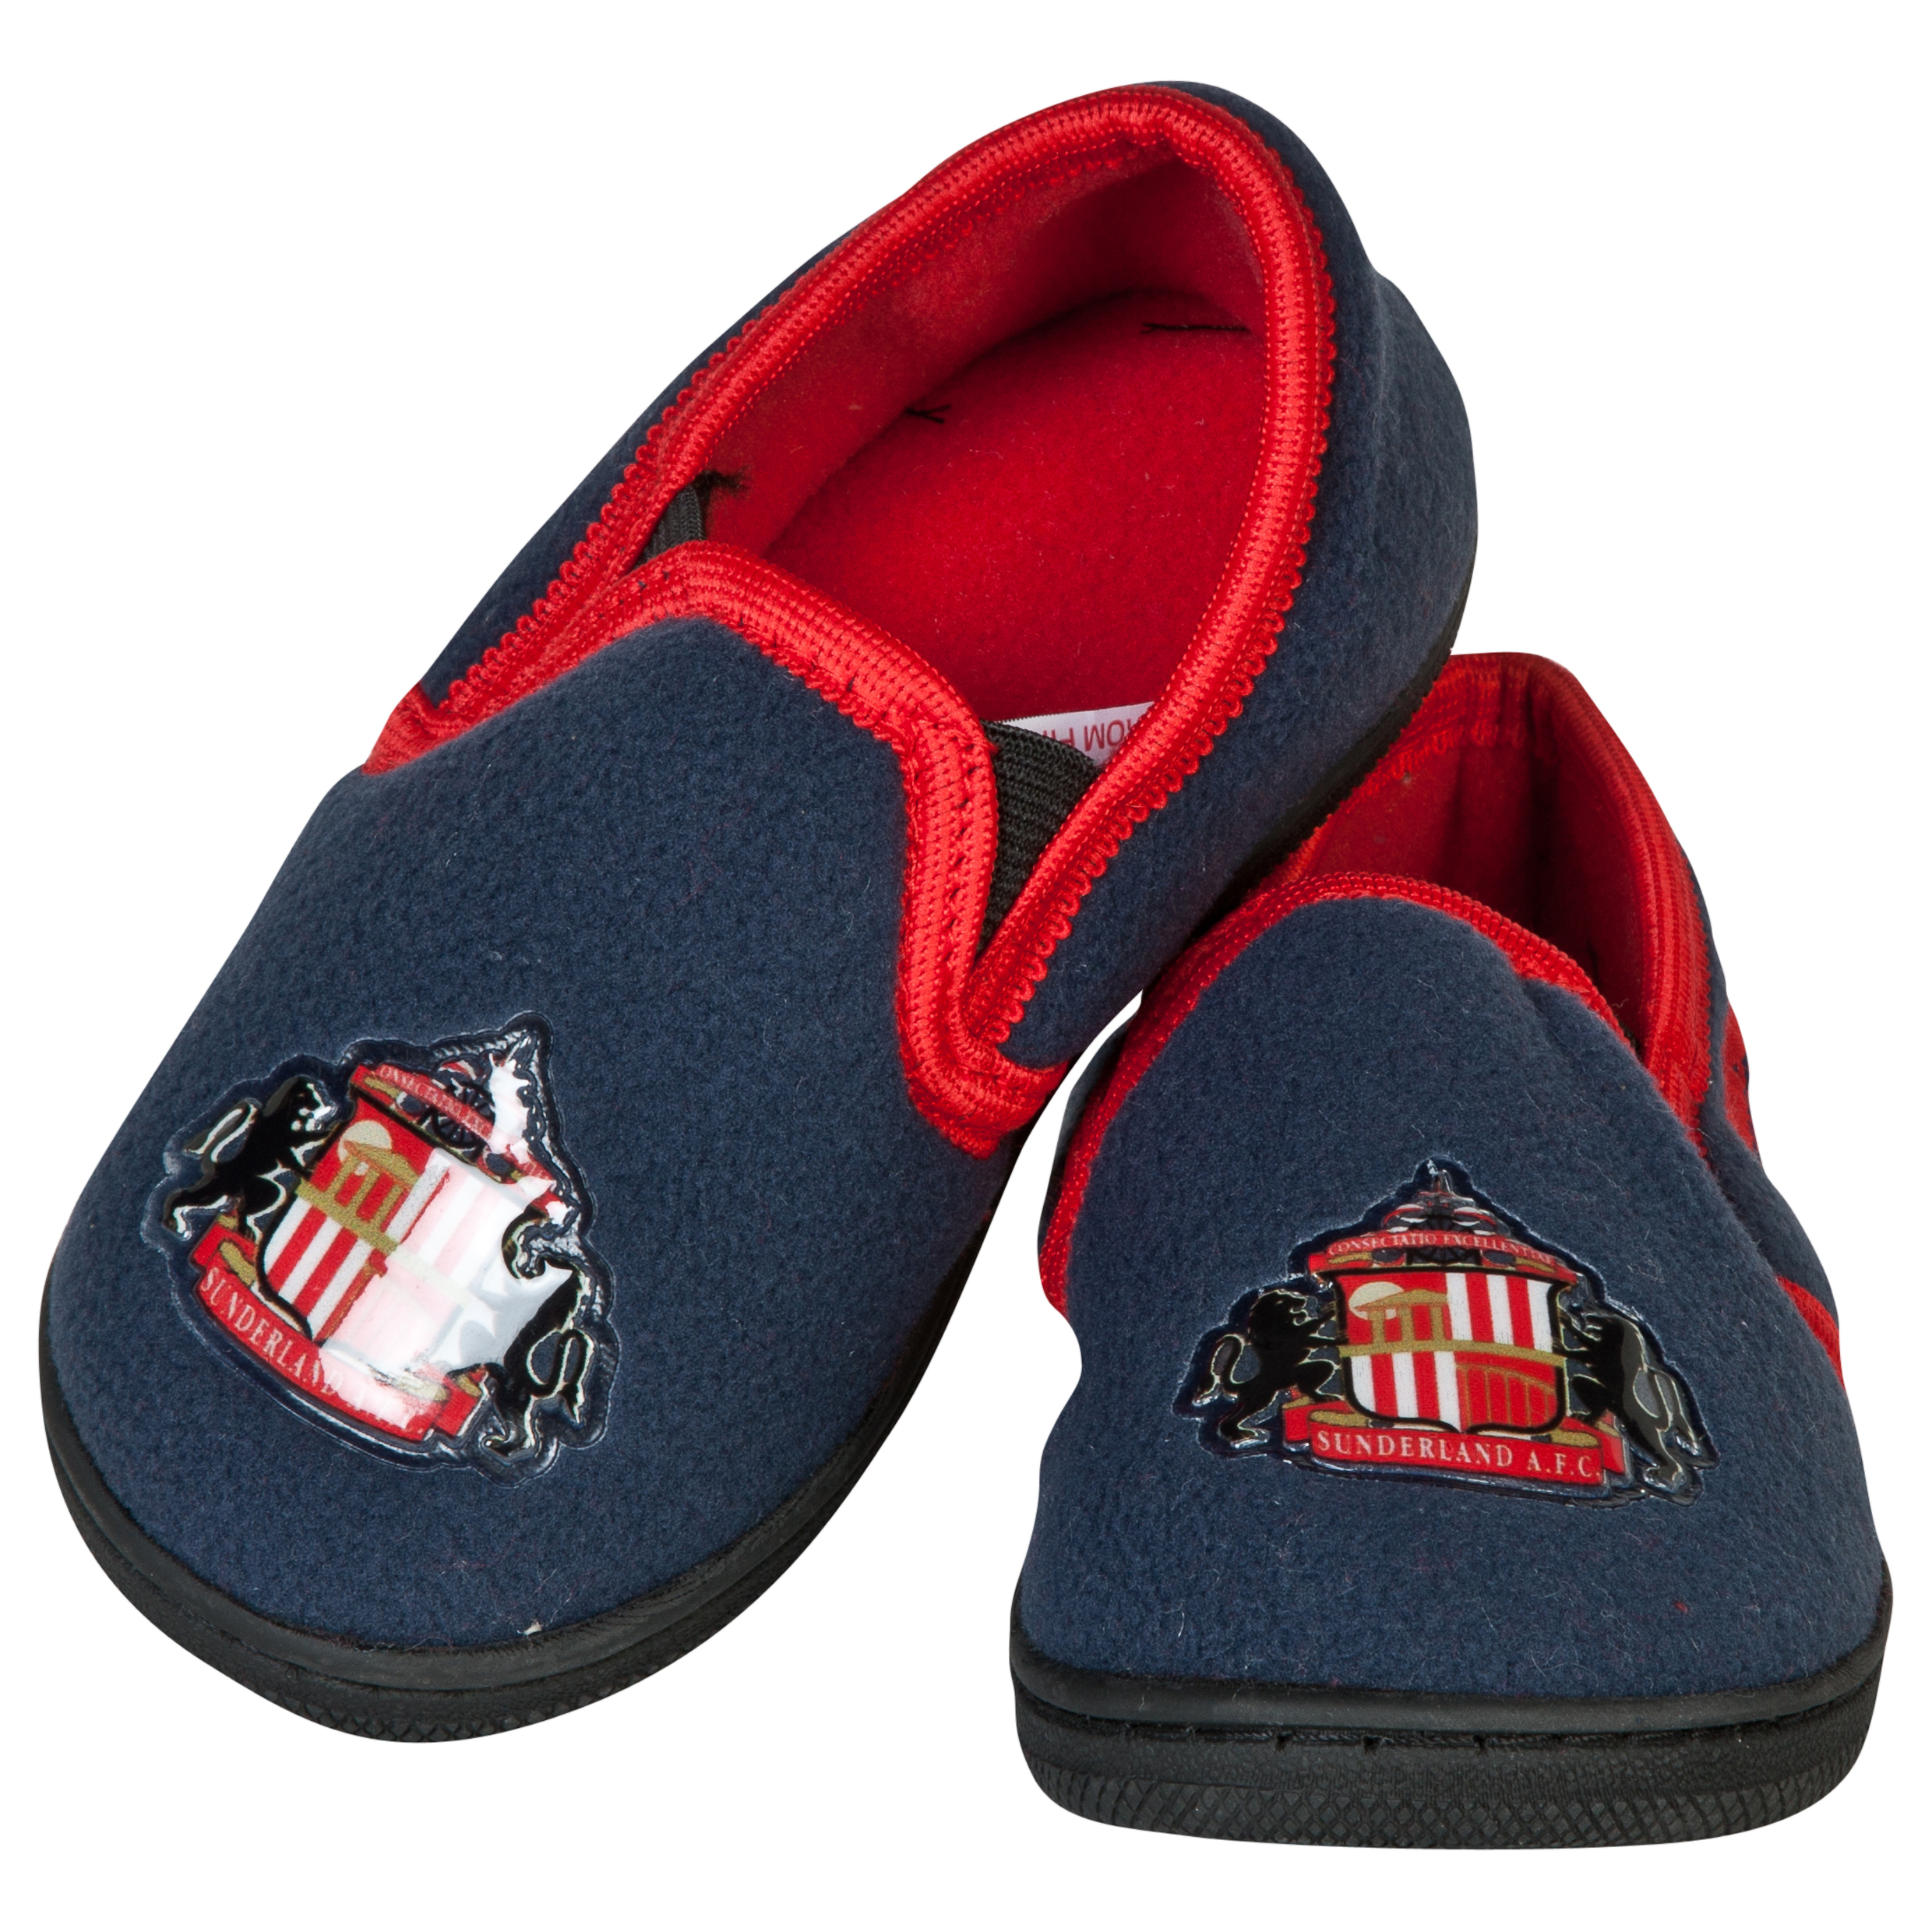 Sunderland Joshua Slippers - NavyRed - Boys Navy